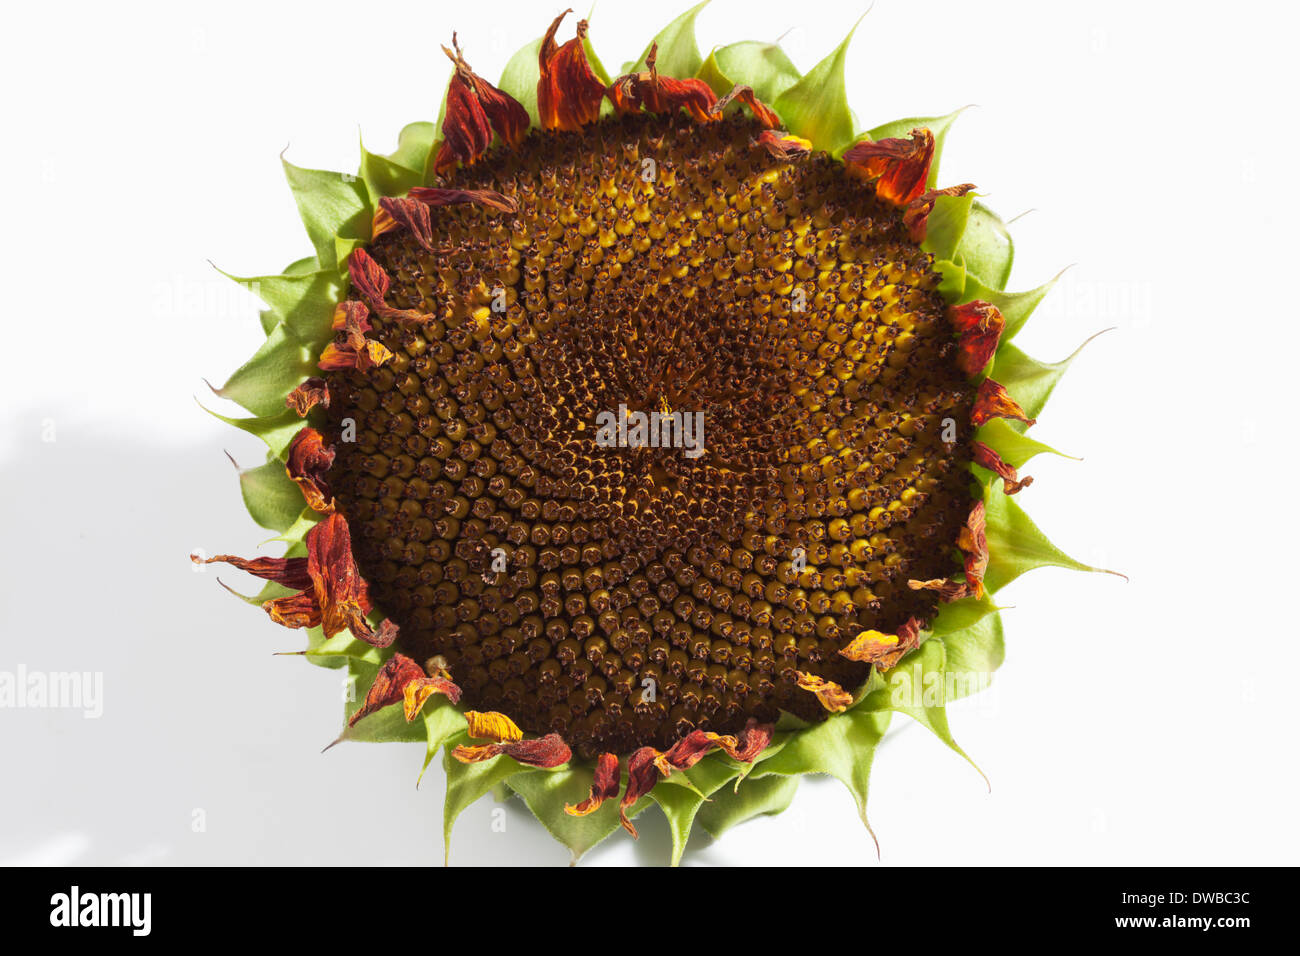 Withered sunflower (Helianthus annuus), studio shot - Stock Image